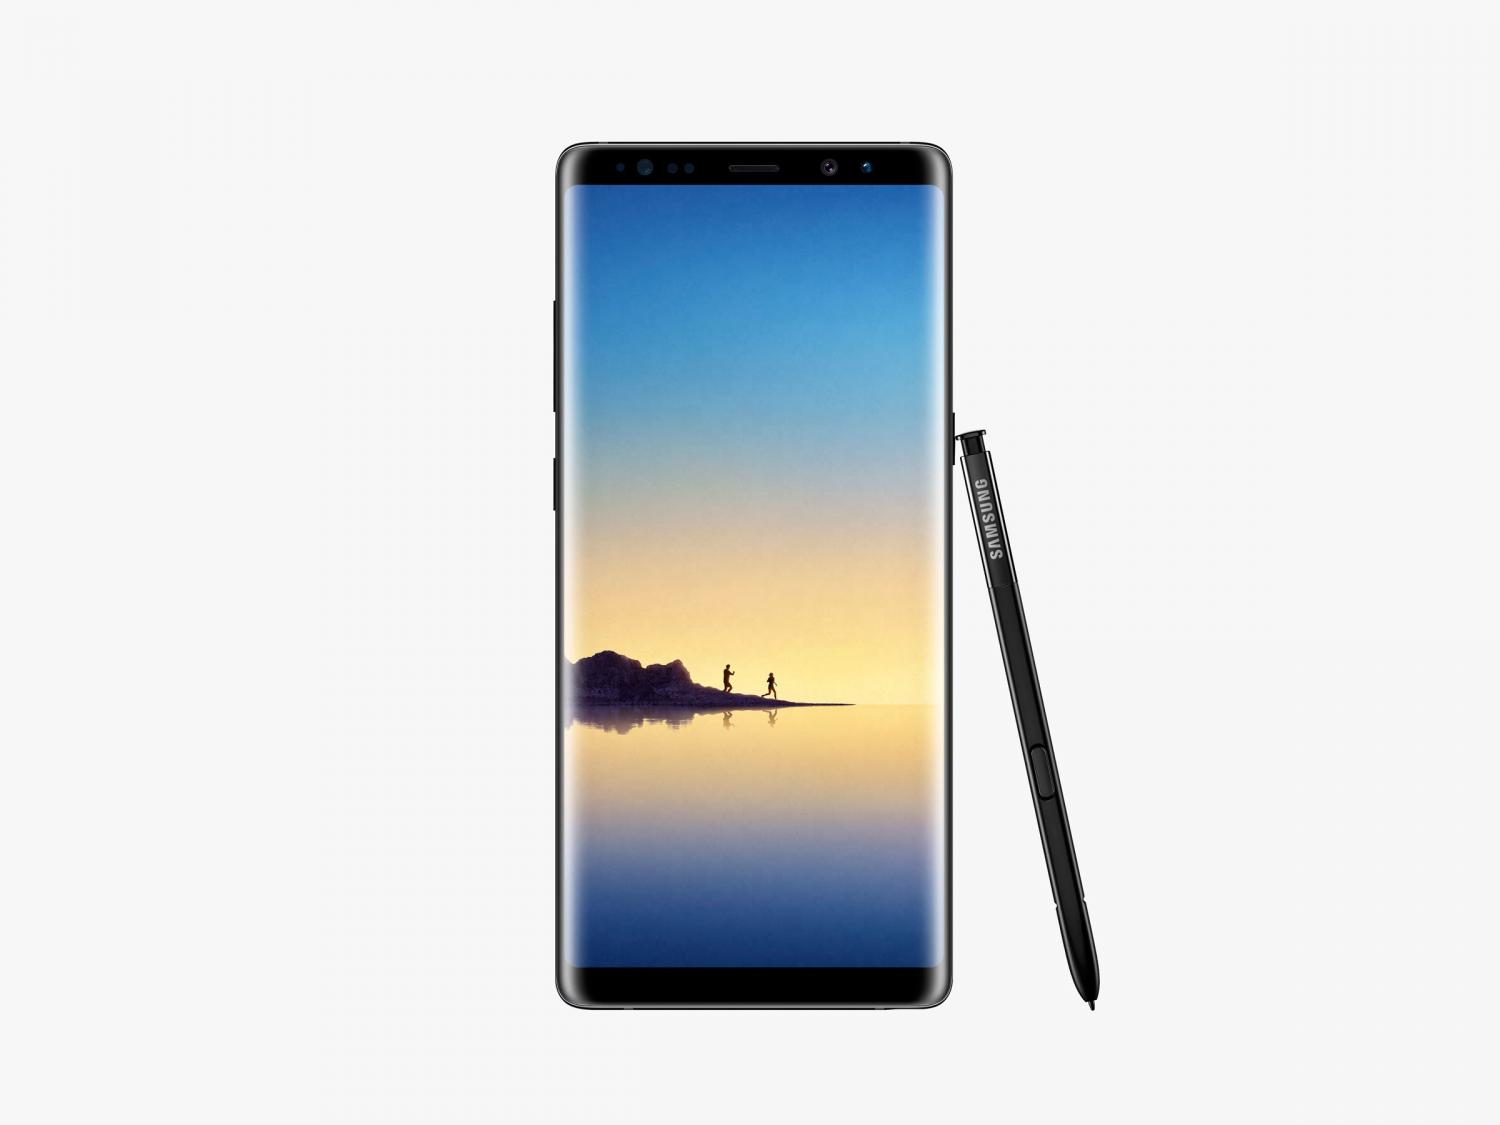 Samsung eyes reset with new Galaxy Note